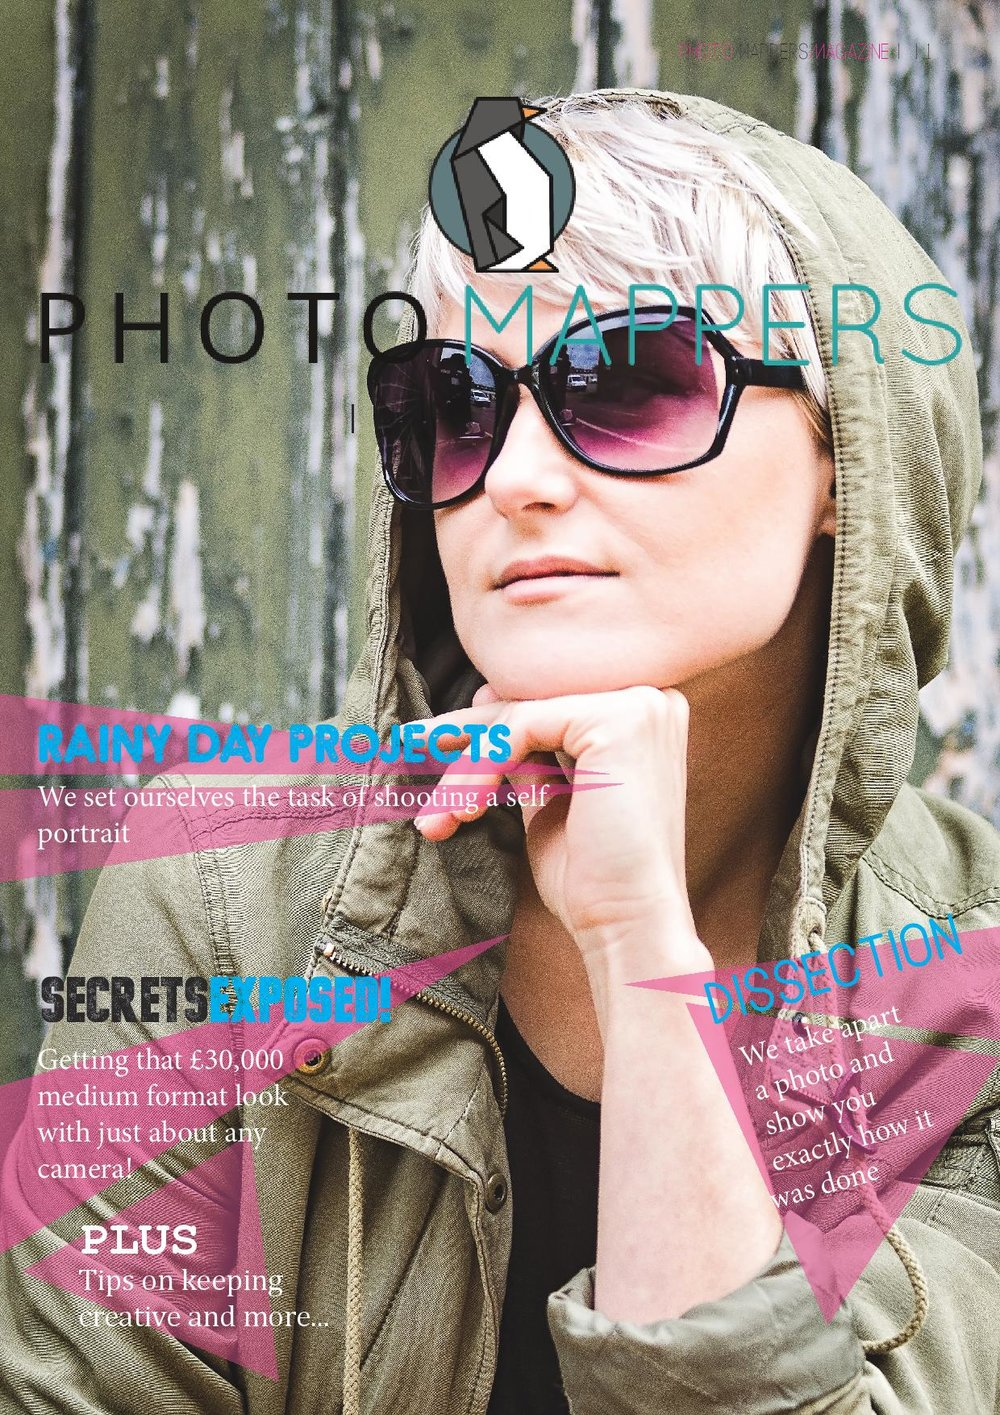 Issue 2 - Photomappers magazine issue 2. This issue is focused on portraits and helping you improve your photography. Instantly.